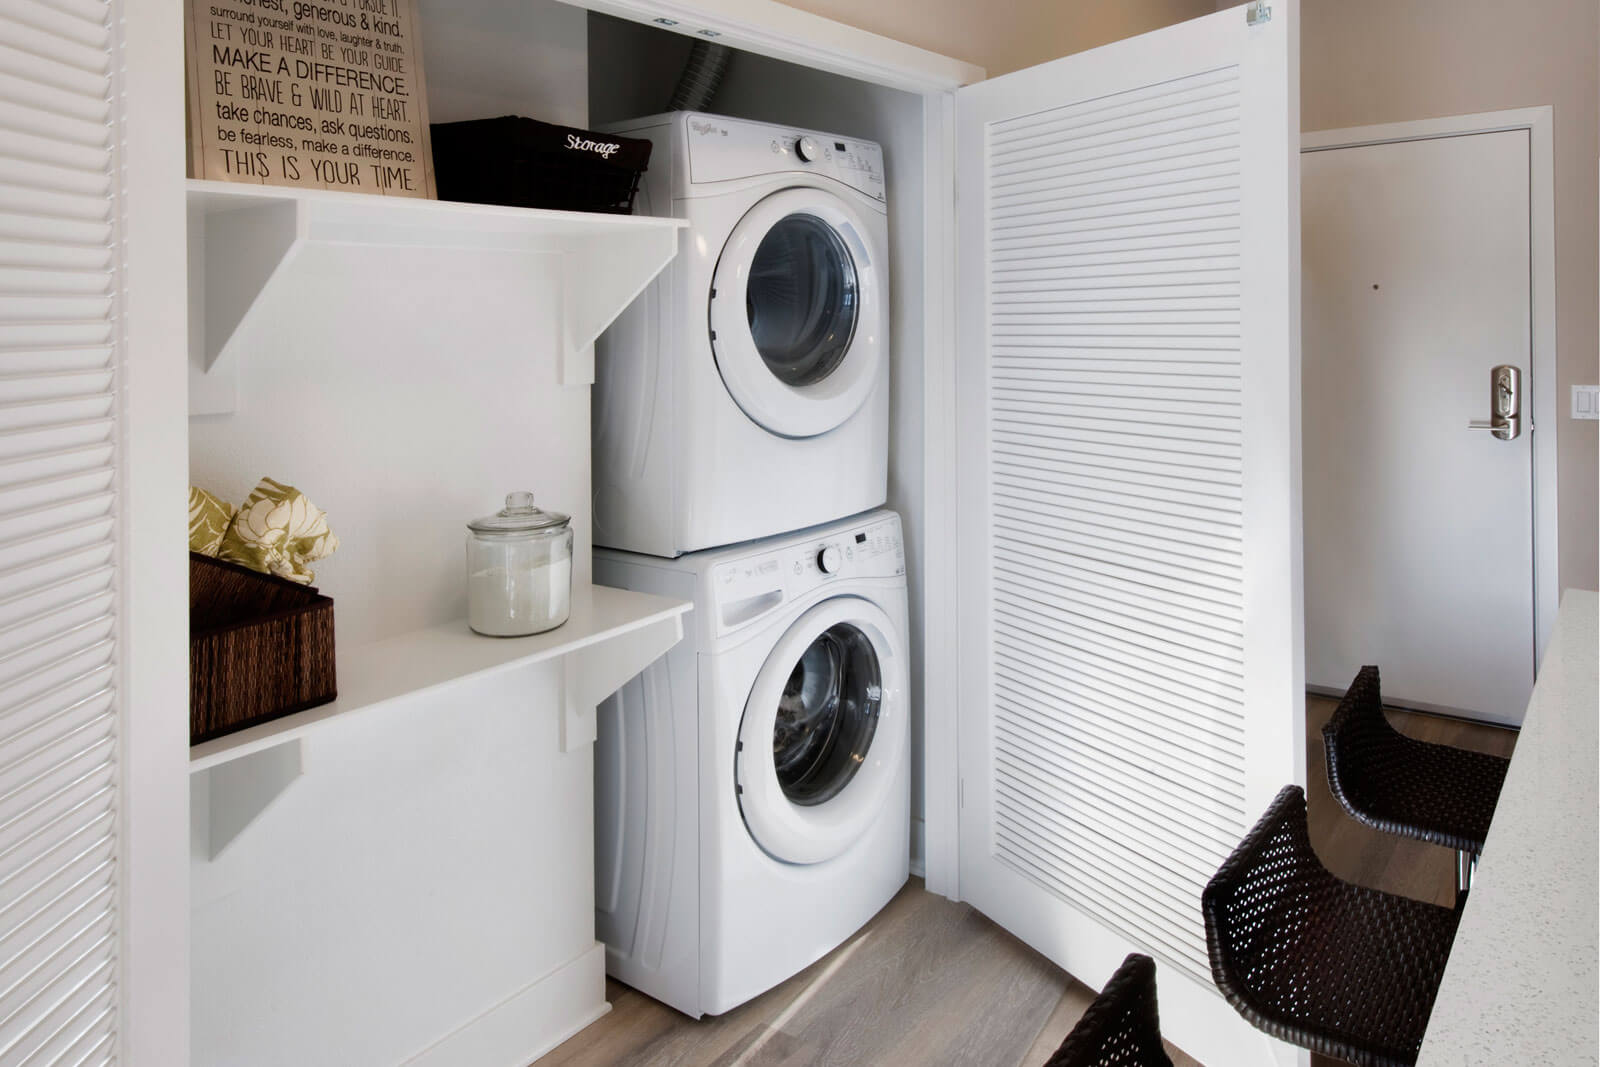 In-Unit Washers/Dryers at Boardwalk by Windsor, 7461 Edinger Ave., CA